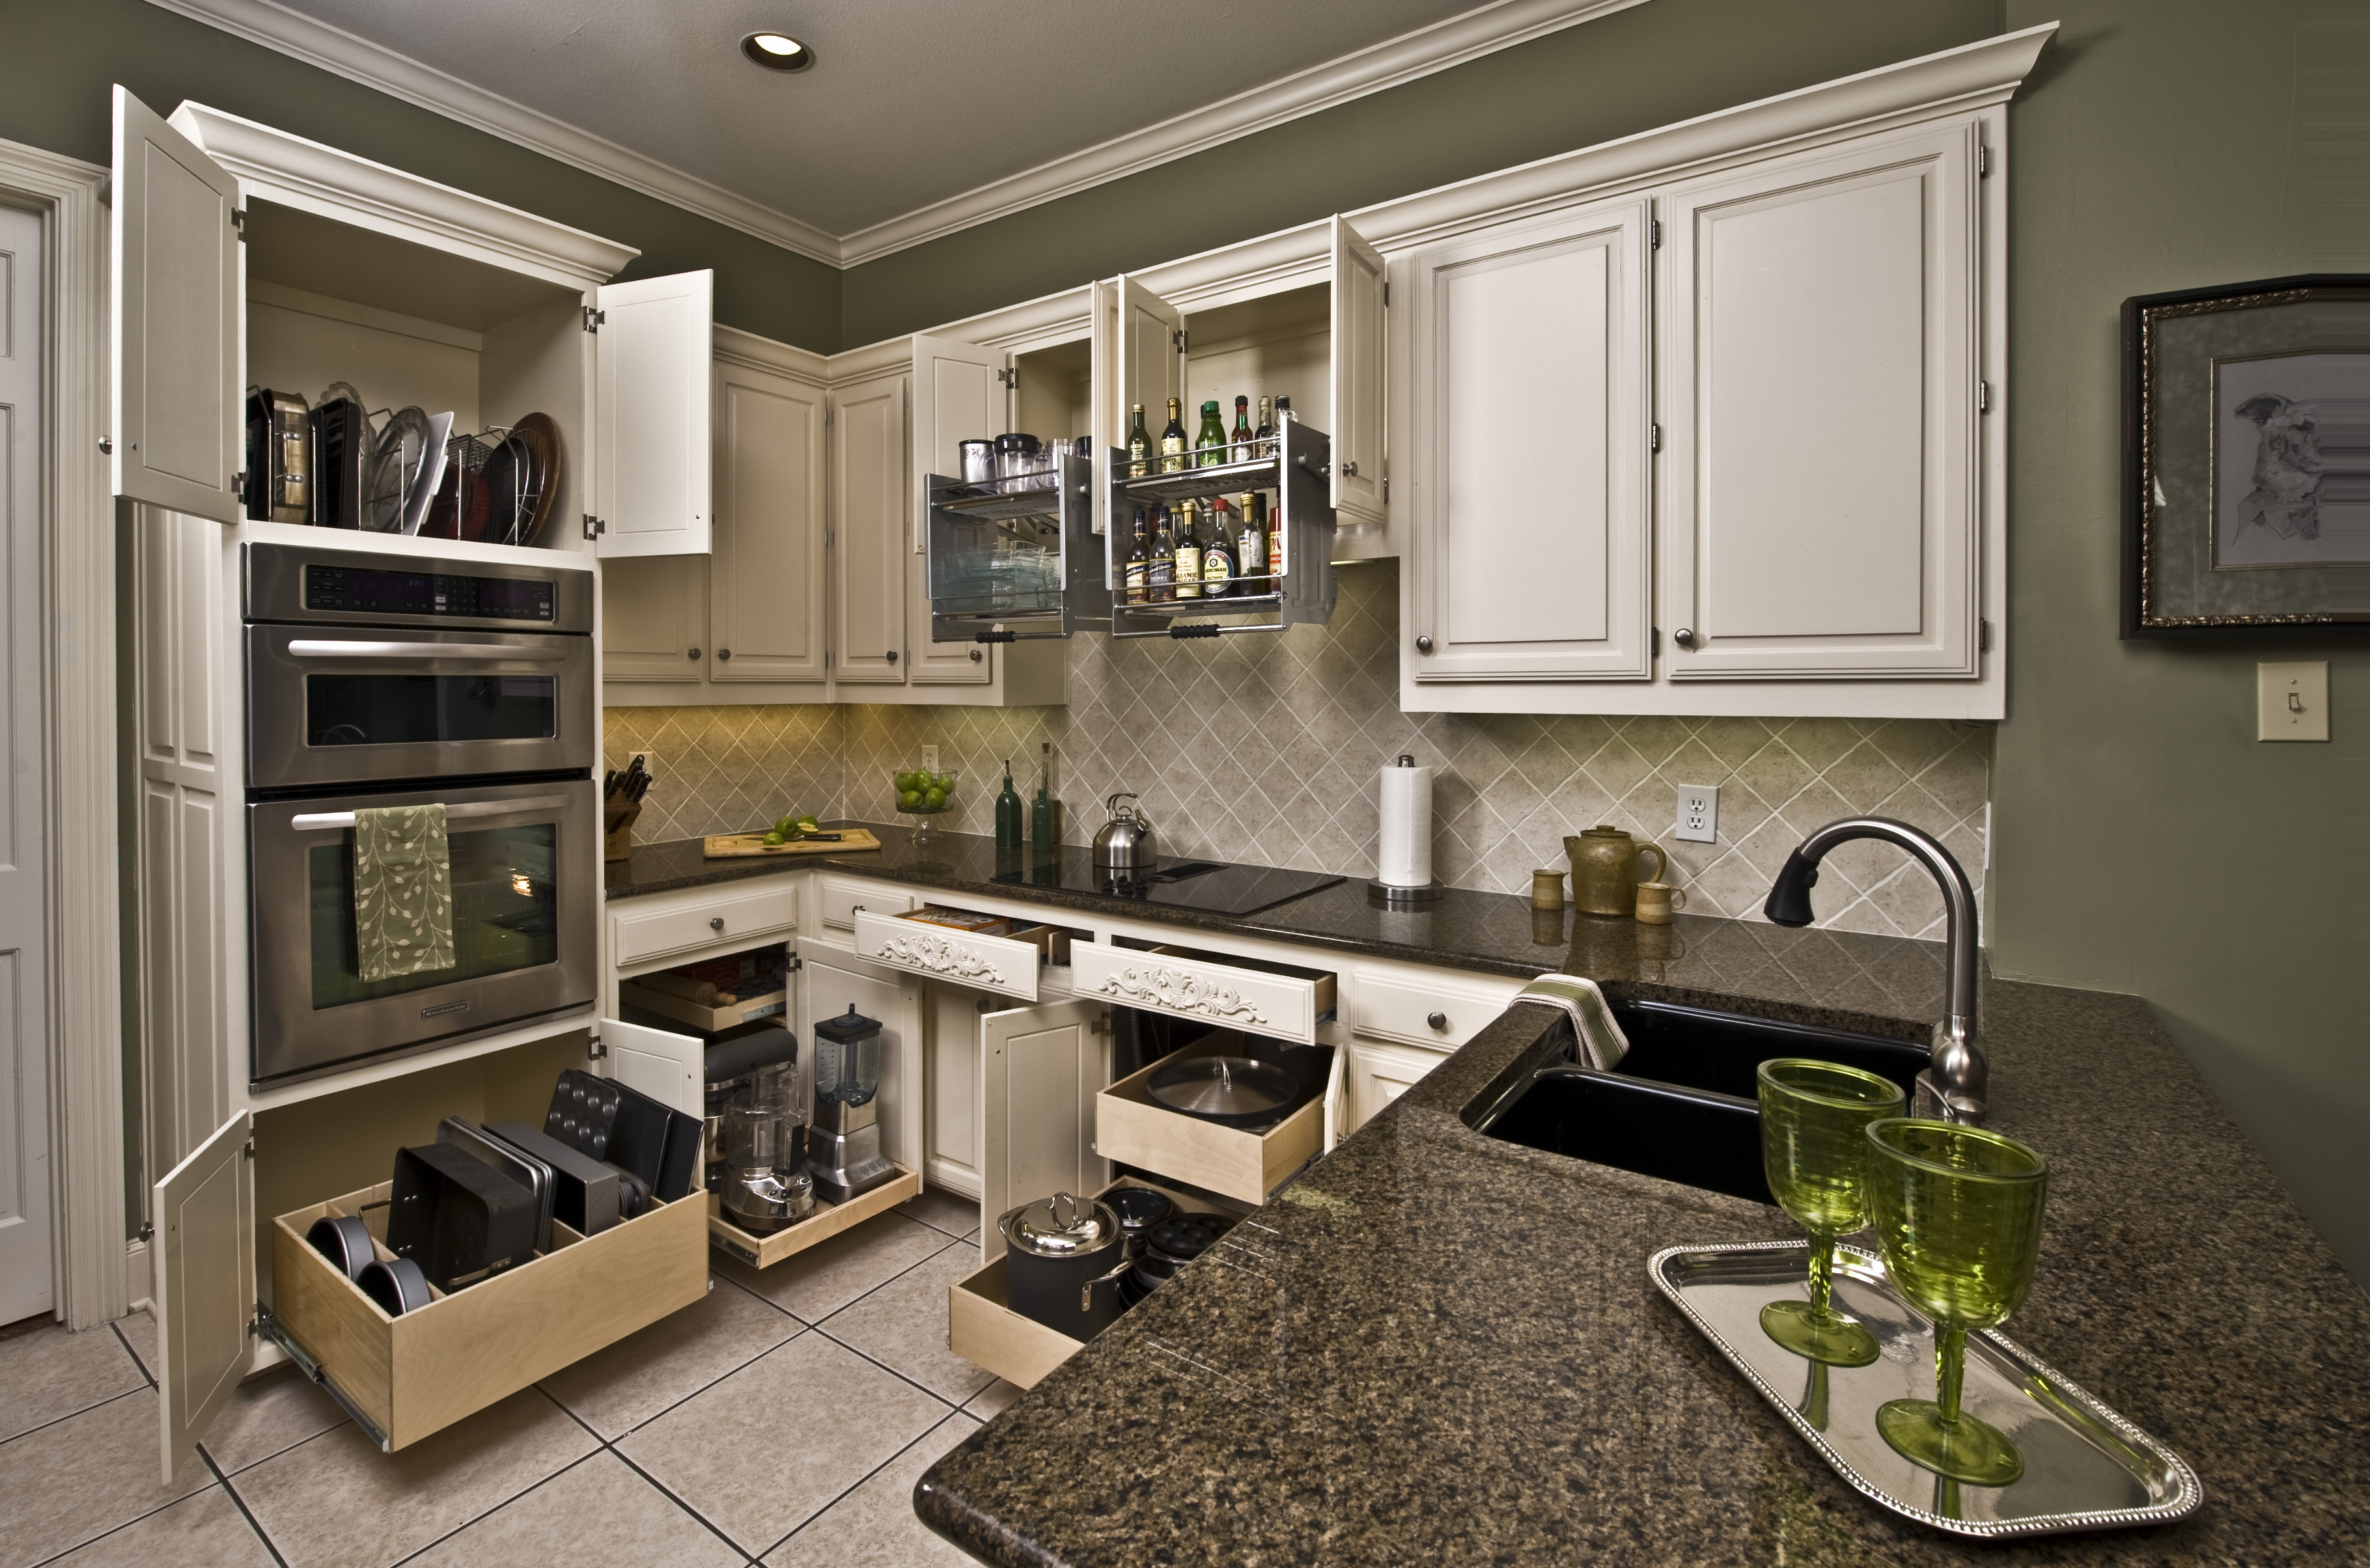 For A Kitchen Update Is Sliding Drawers For Lower Cabinet Shelving Made To Fit Slide Out